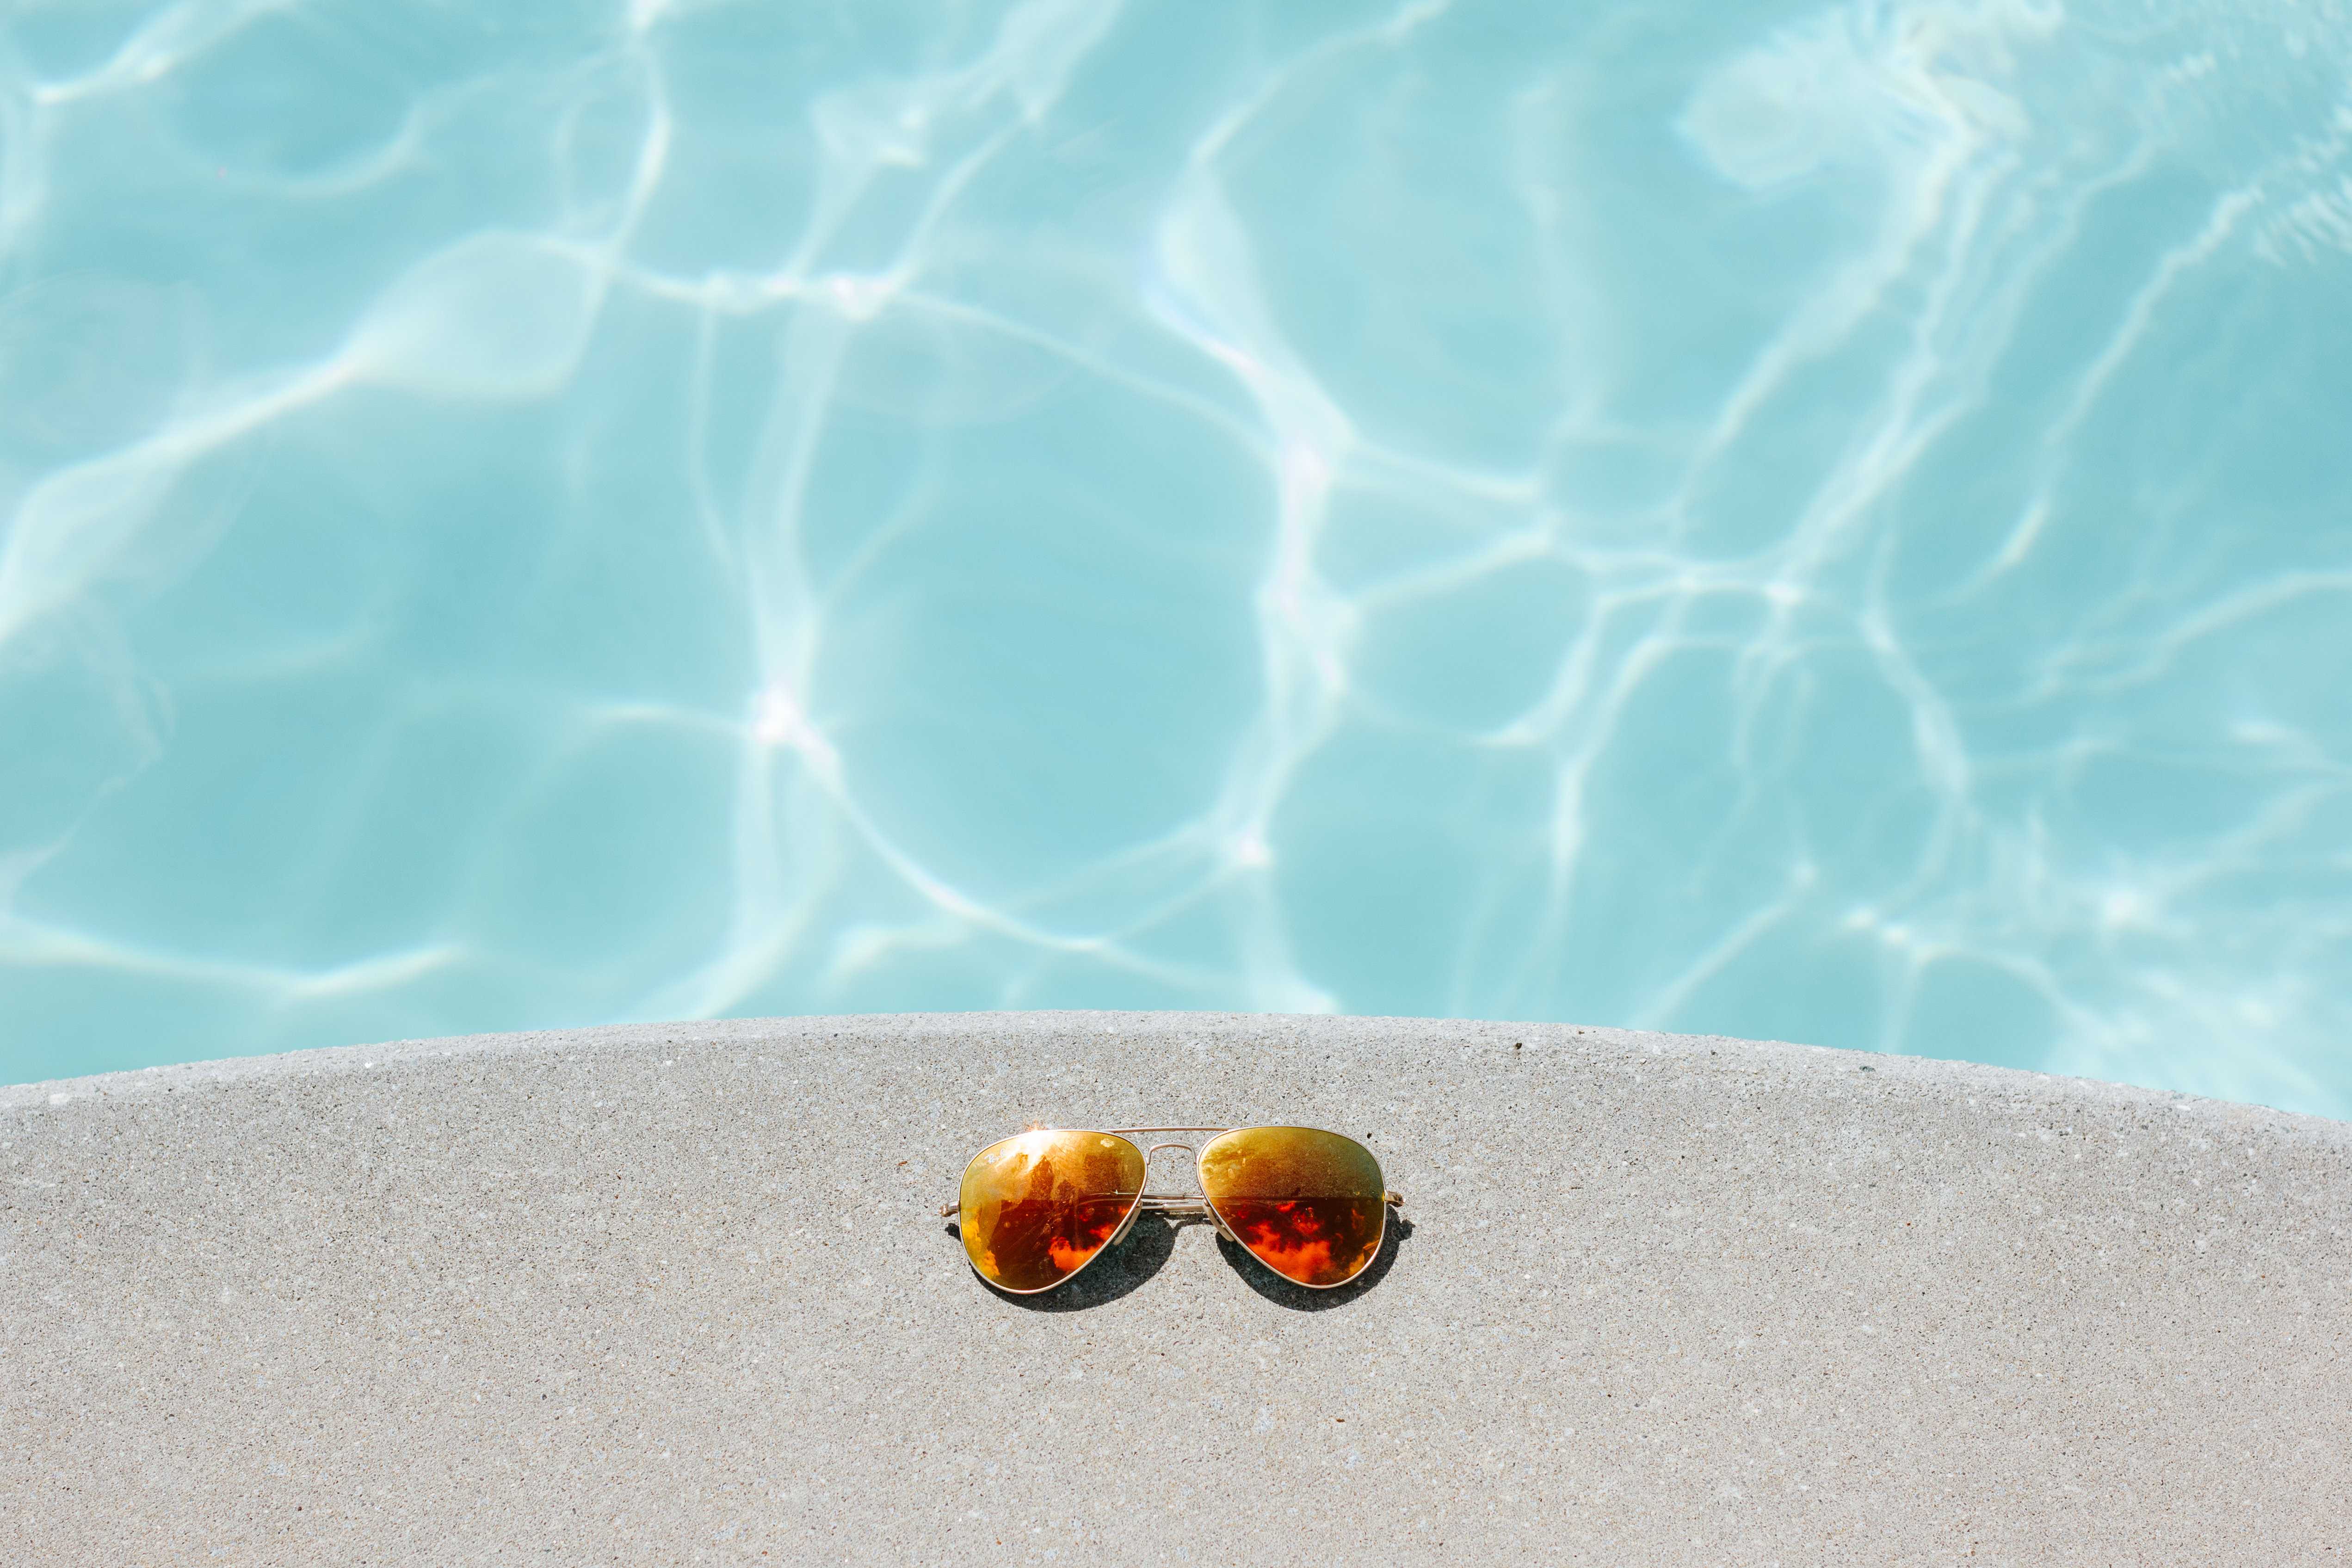 Refractive surgery during the Summer? Today it's possible